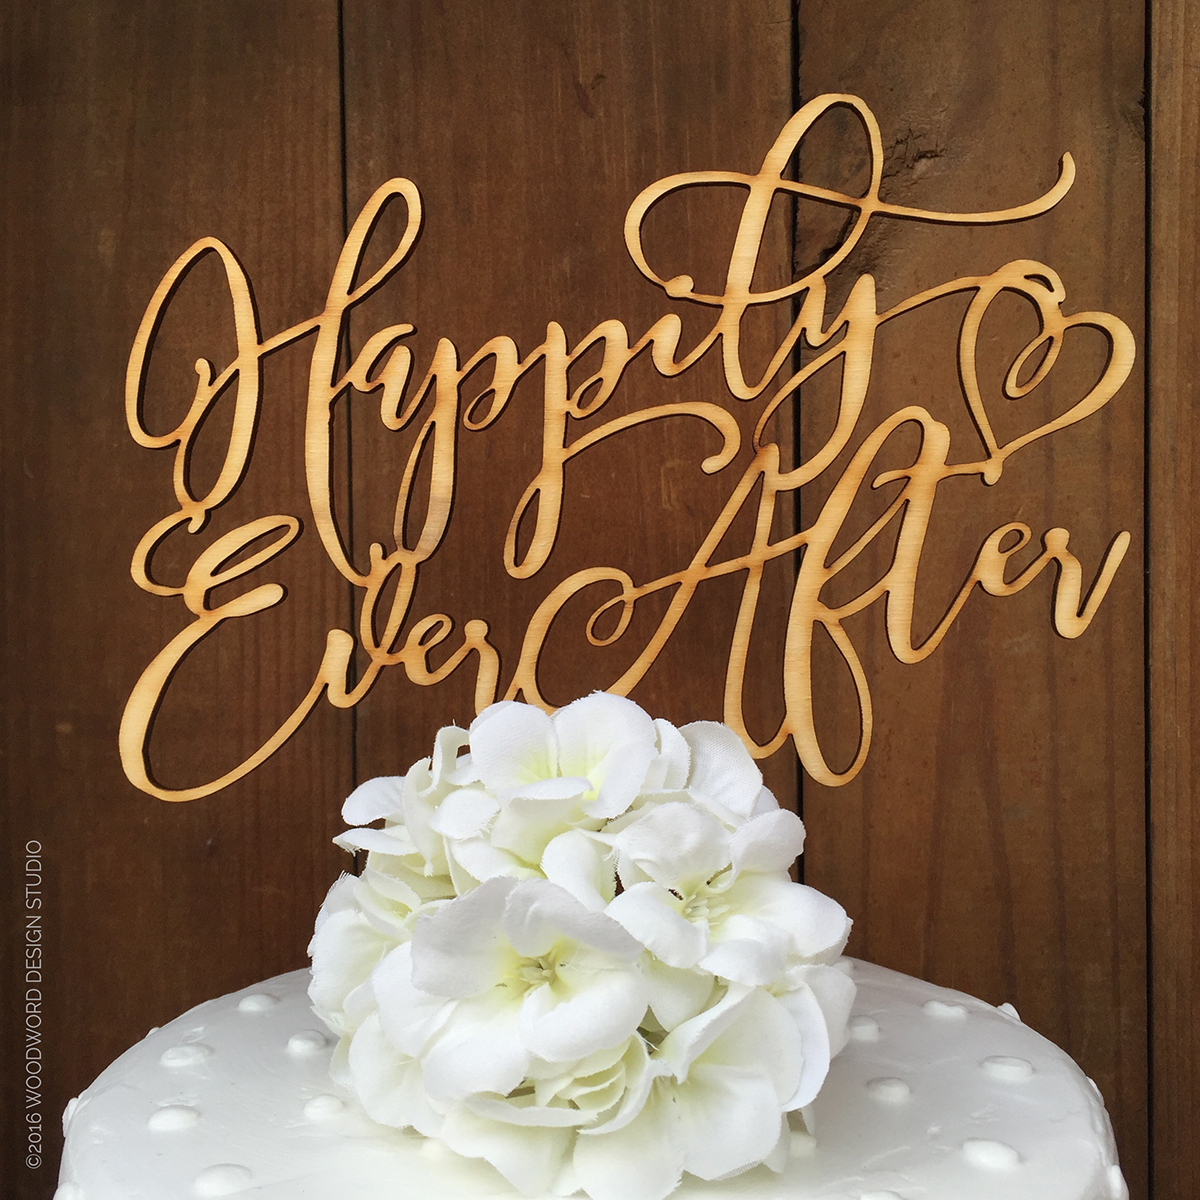 Happily Ever After with Heart Wedding Cake Topper     Woodword Design     Happily Ever After with Heart Wedding Cake Topper